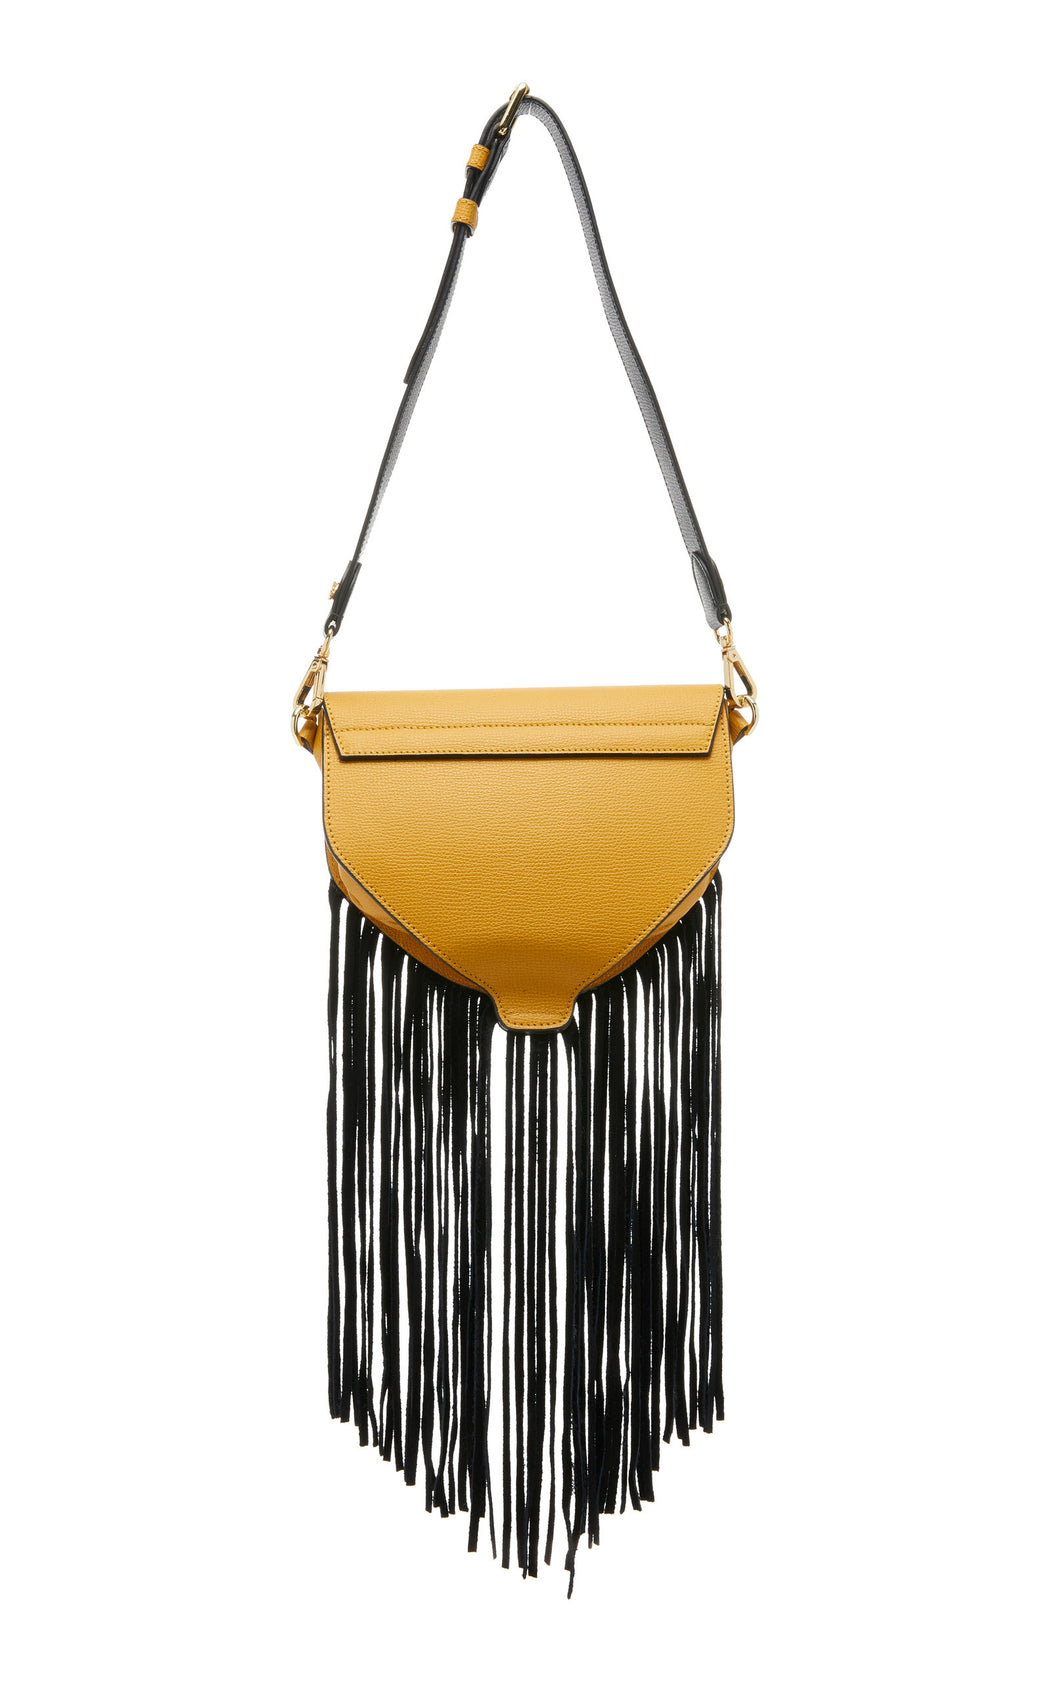 "The ultimate ""IT"" bag for convenience. The Hippie in yellow saffiano leather and black suede fringe can be worn as a luxury belt bag, over the shoulder, or as a luxury leather crossbody. This fun little bag works for every situation--from running errands to music festivals. Roomy interior with fun fringe, contrast edges and nickel turnlock details."